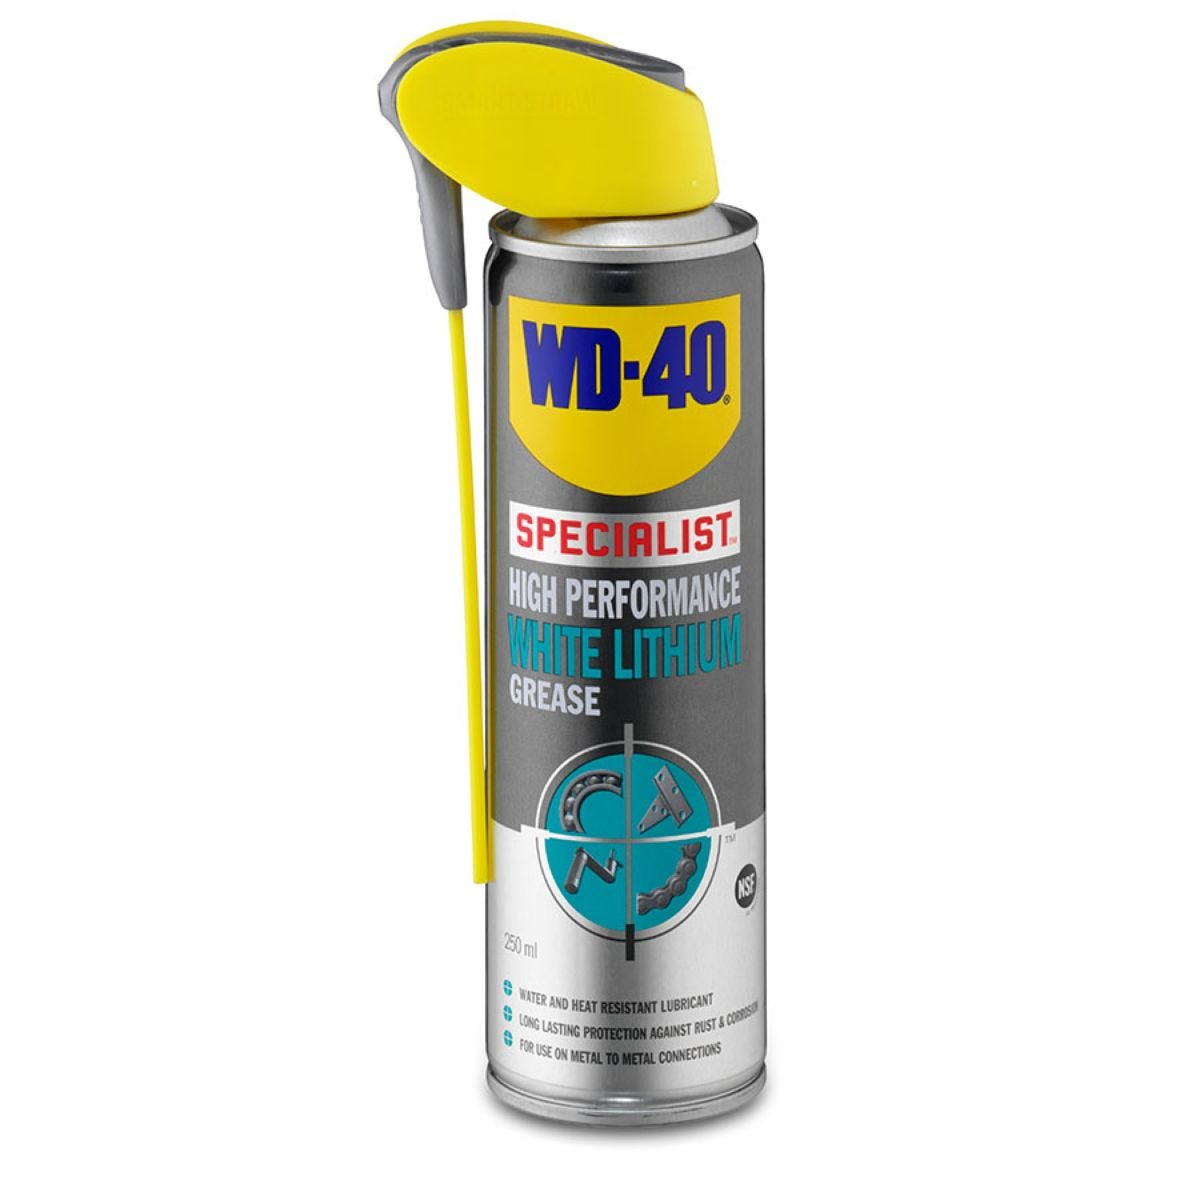 WD-40 Specialist White Lithium Grease – 250ml